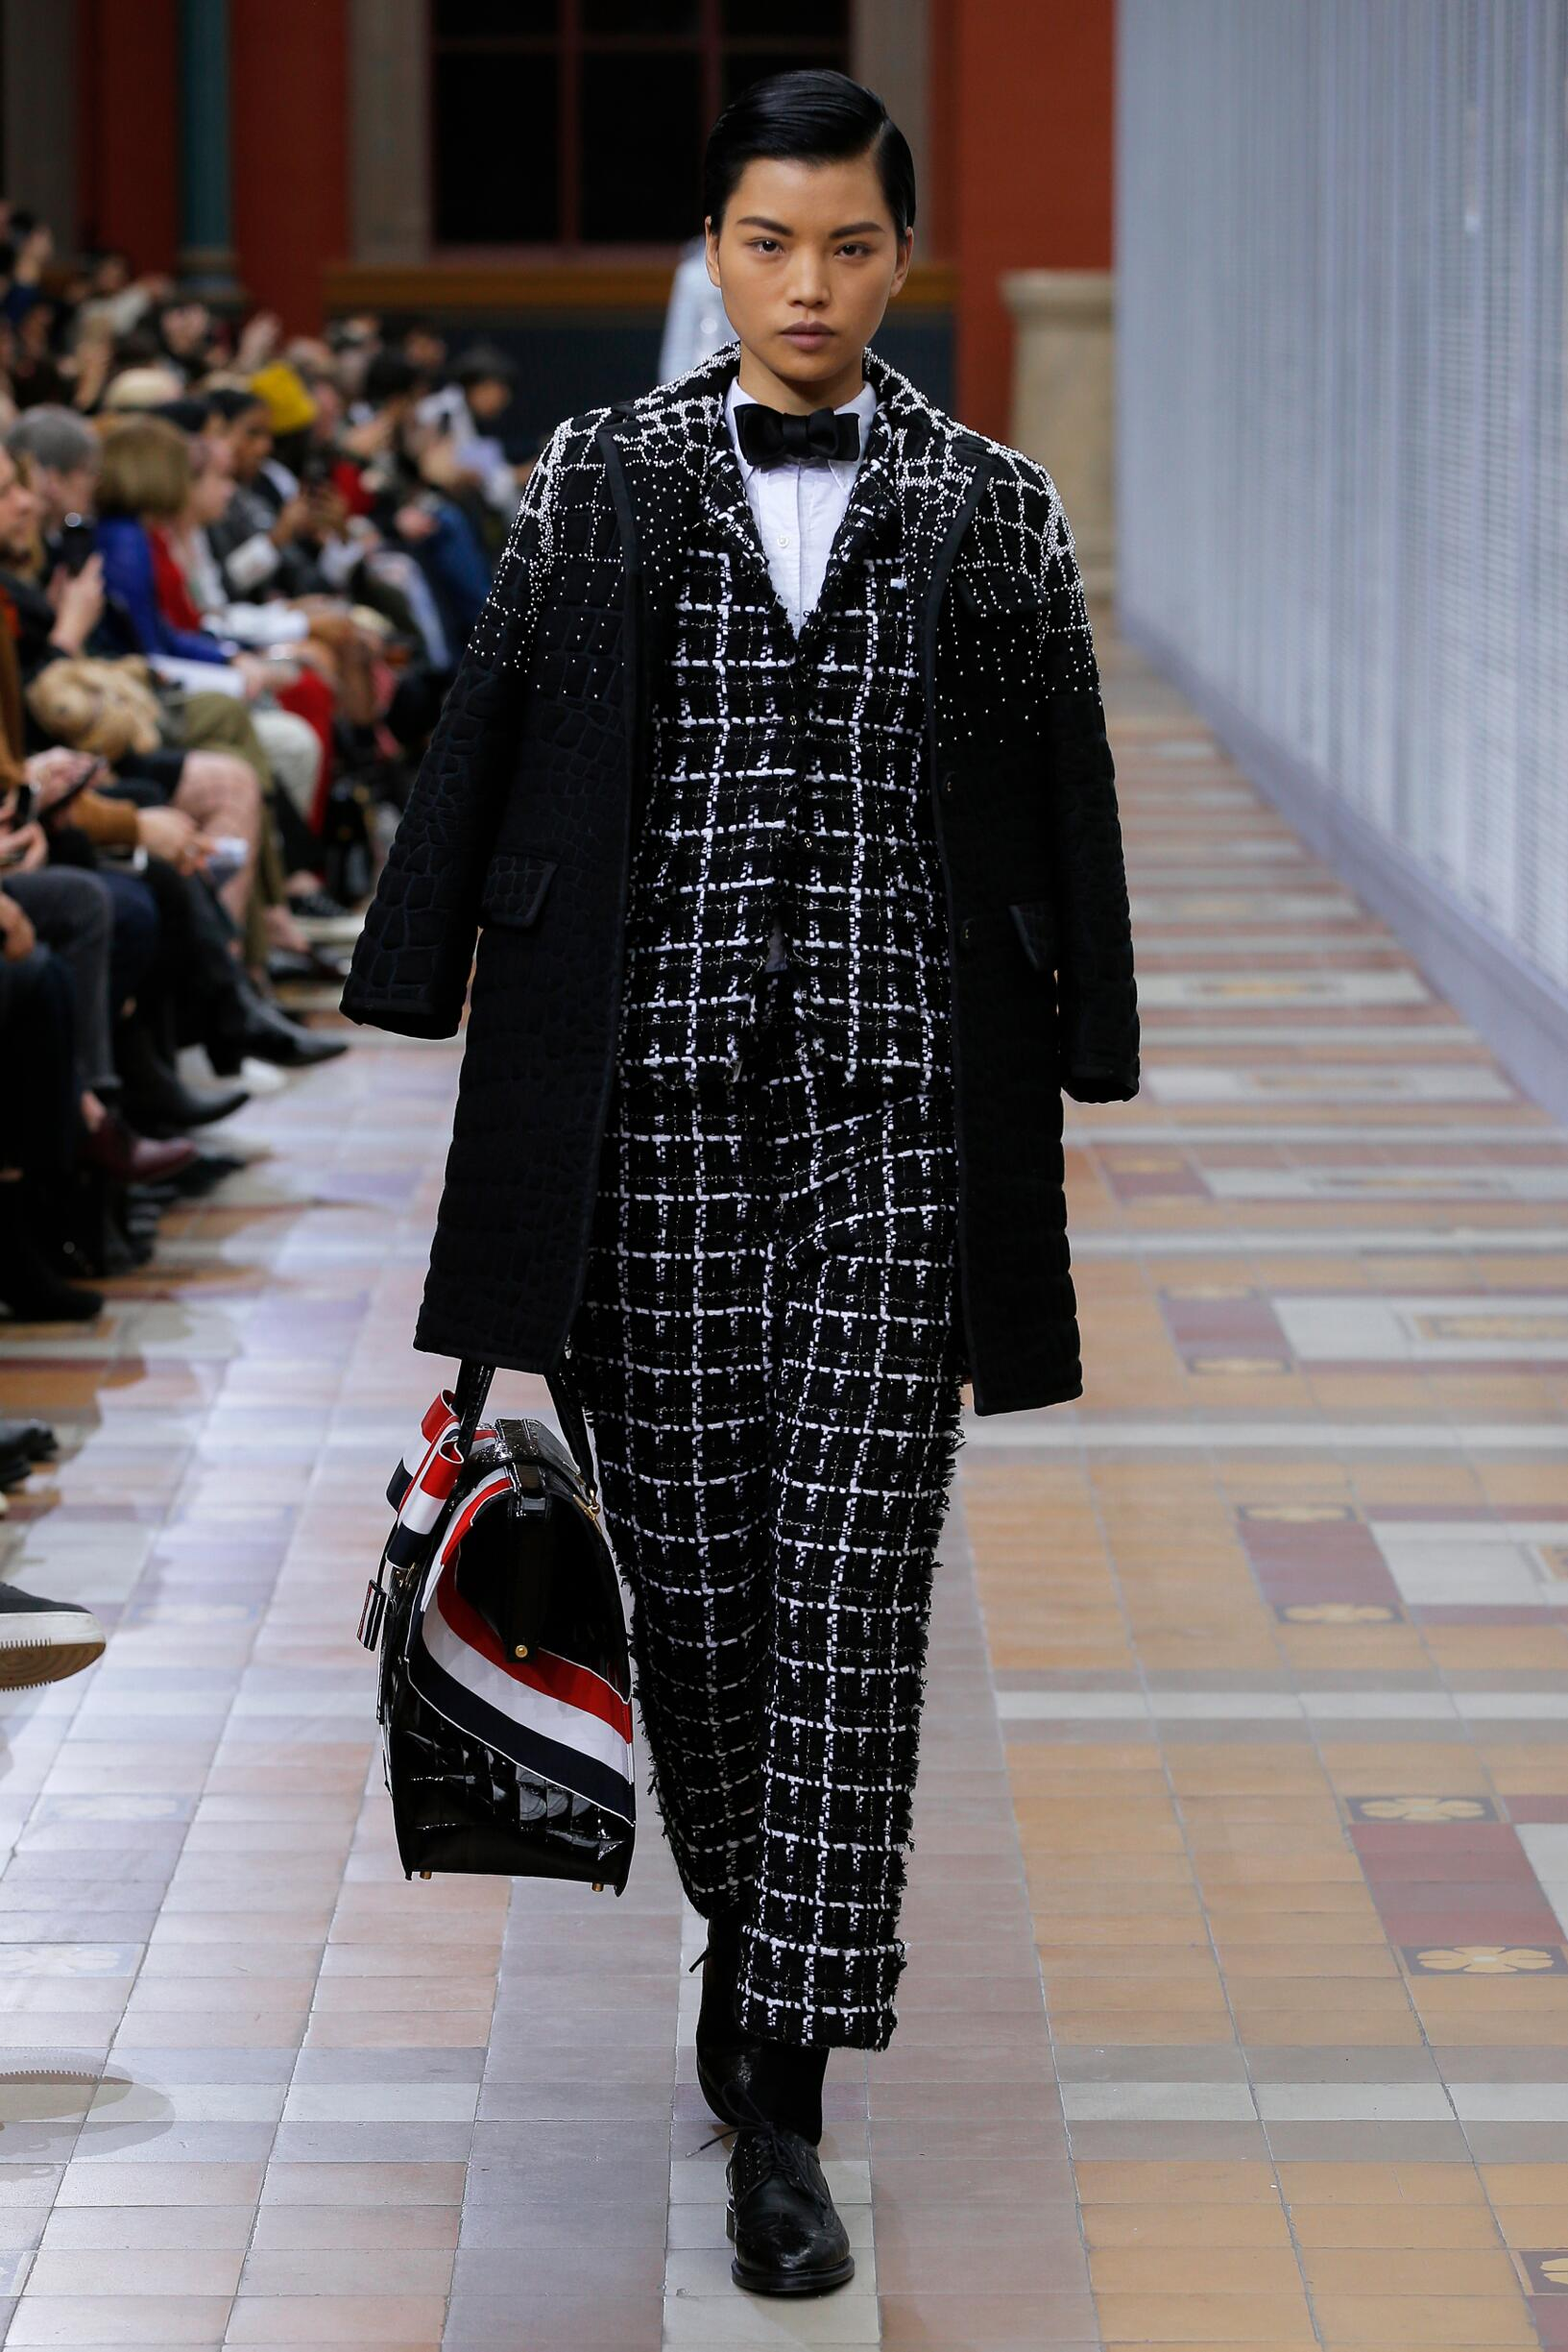 2019 Thom Browne Catwalk Paris Fashion Week